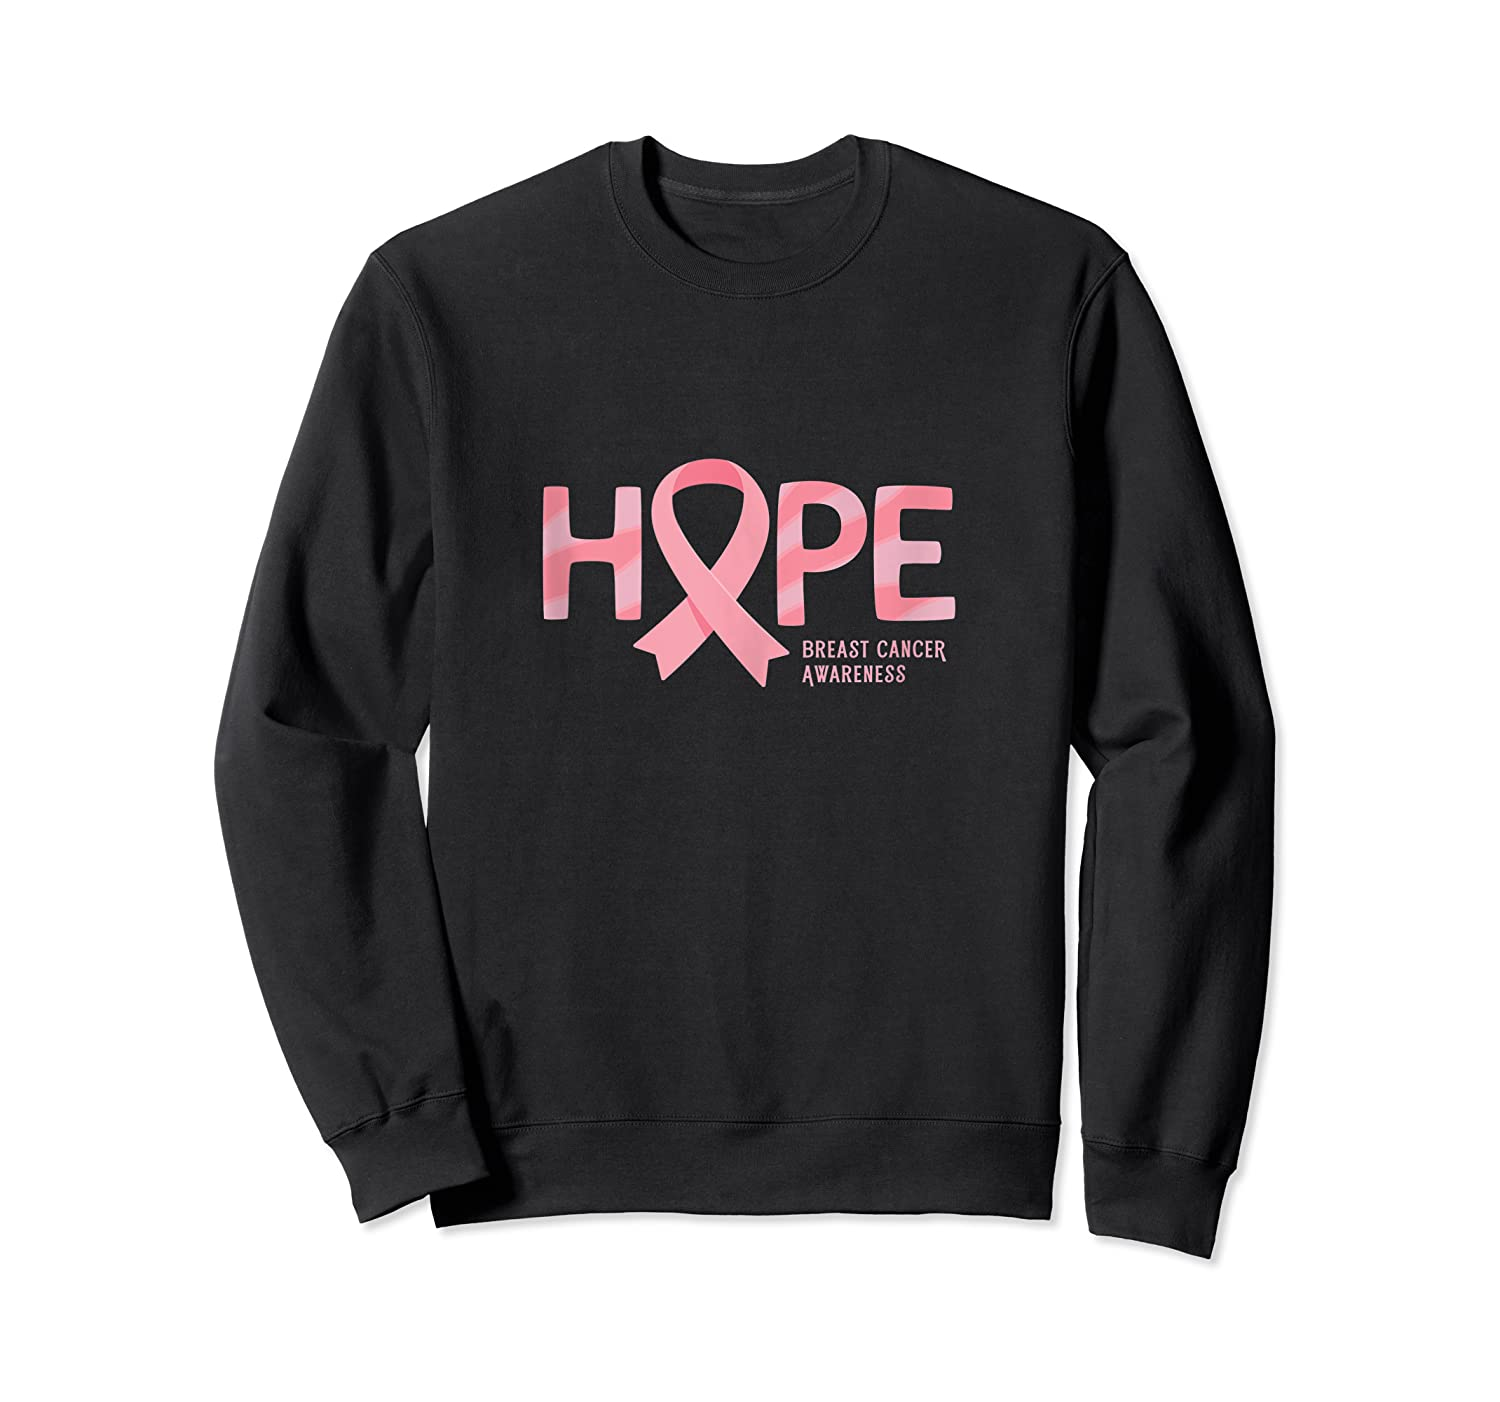 Have Hope Breast Cancer Awareness Month Support Team Tank Top Shirts Crewneck Sweater